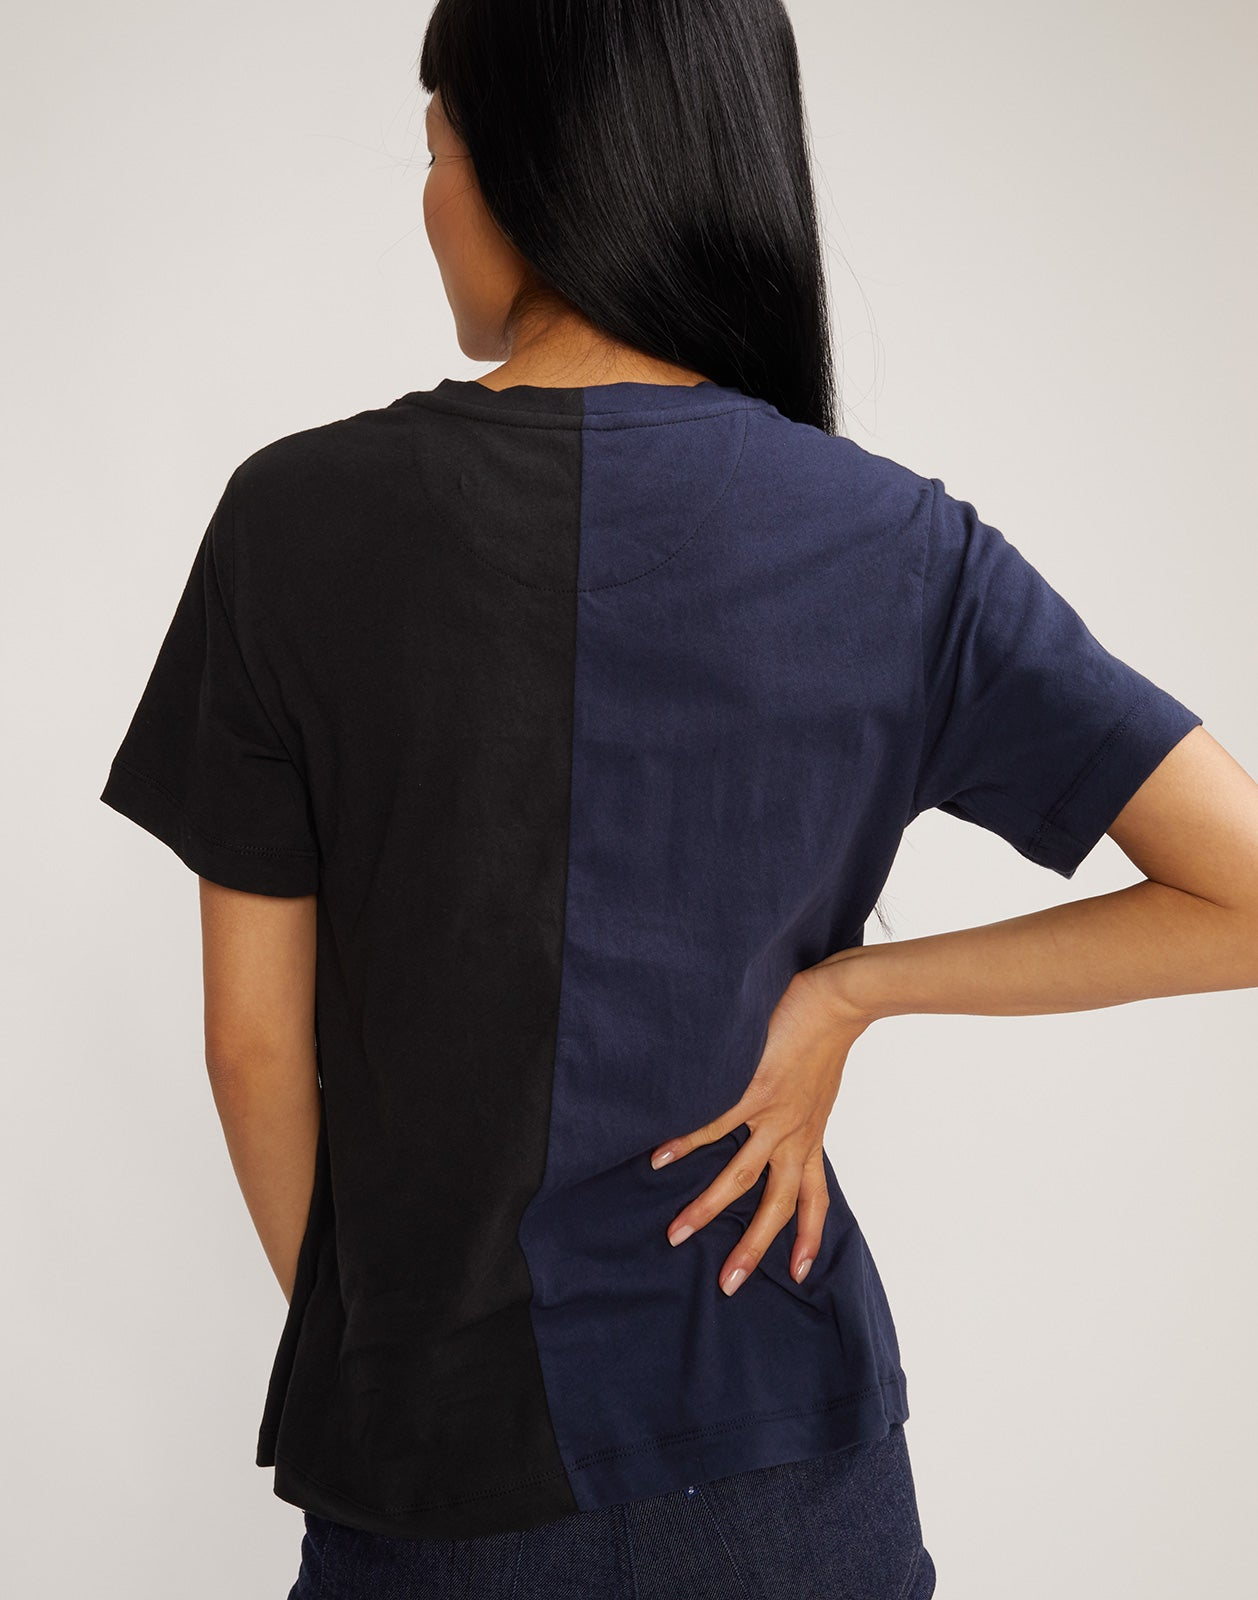 Back view of half black half navy 'Role Model' tee